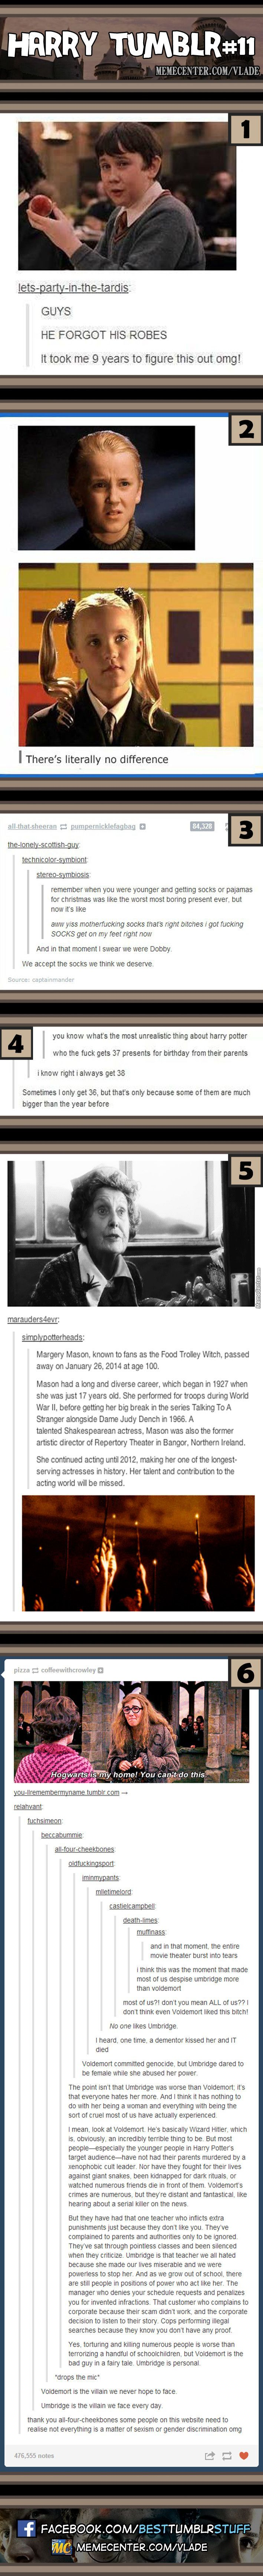 I never thought about the fact that she was a woman. Just that, man, I hated her.